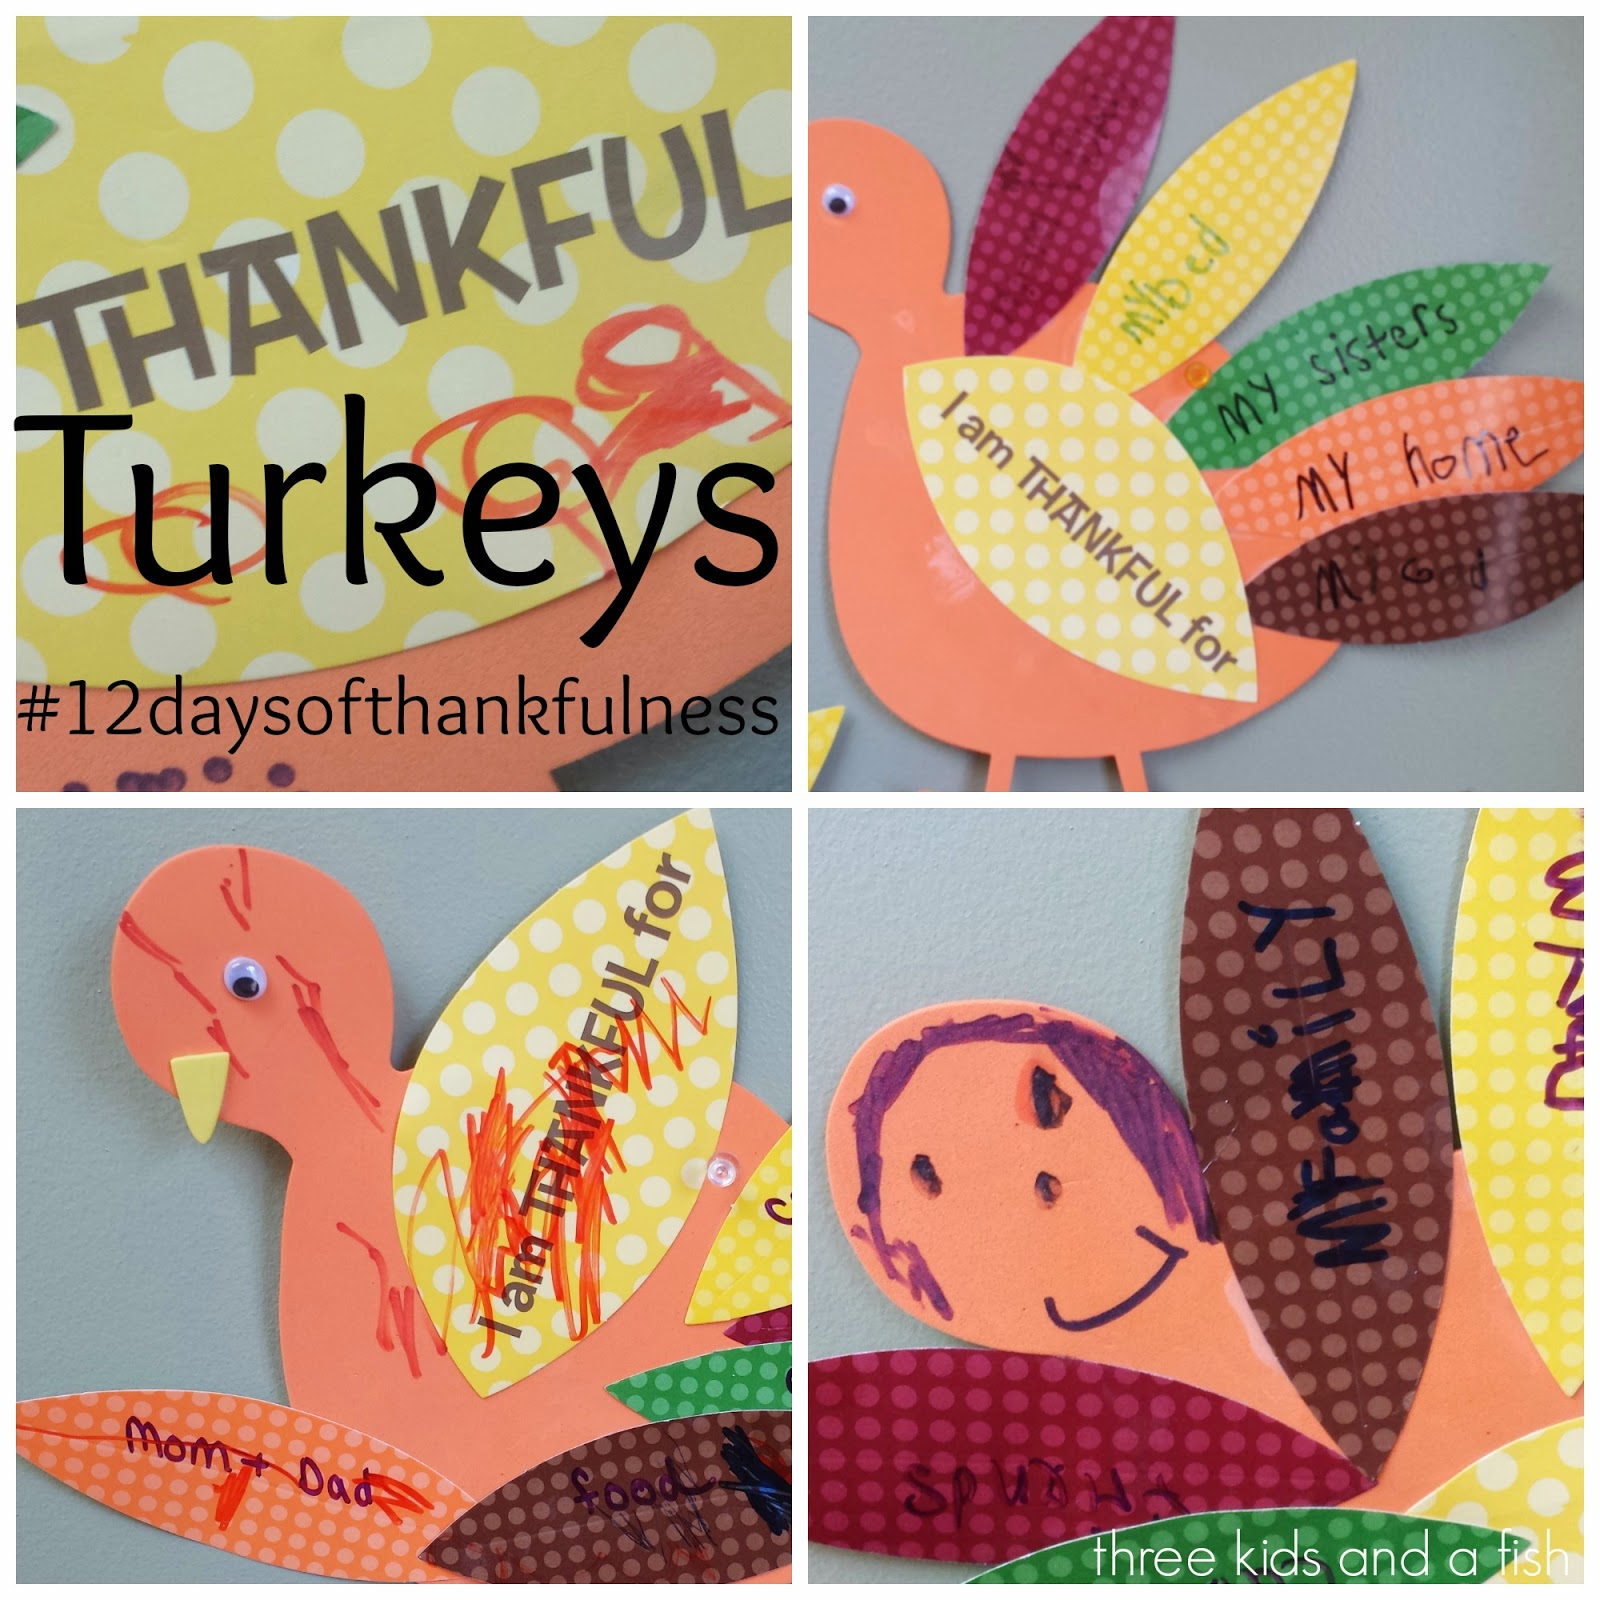 #12daysofthankfulness-Thankful Turkeys